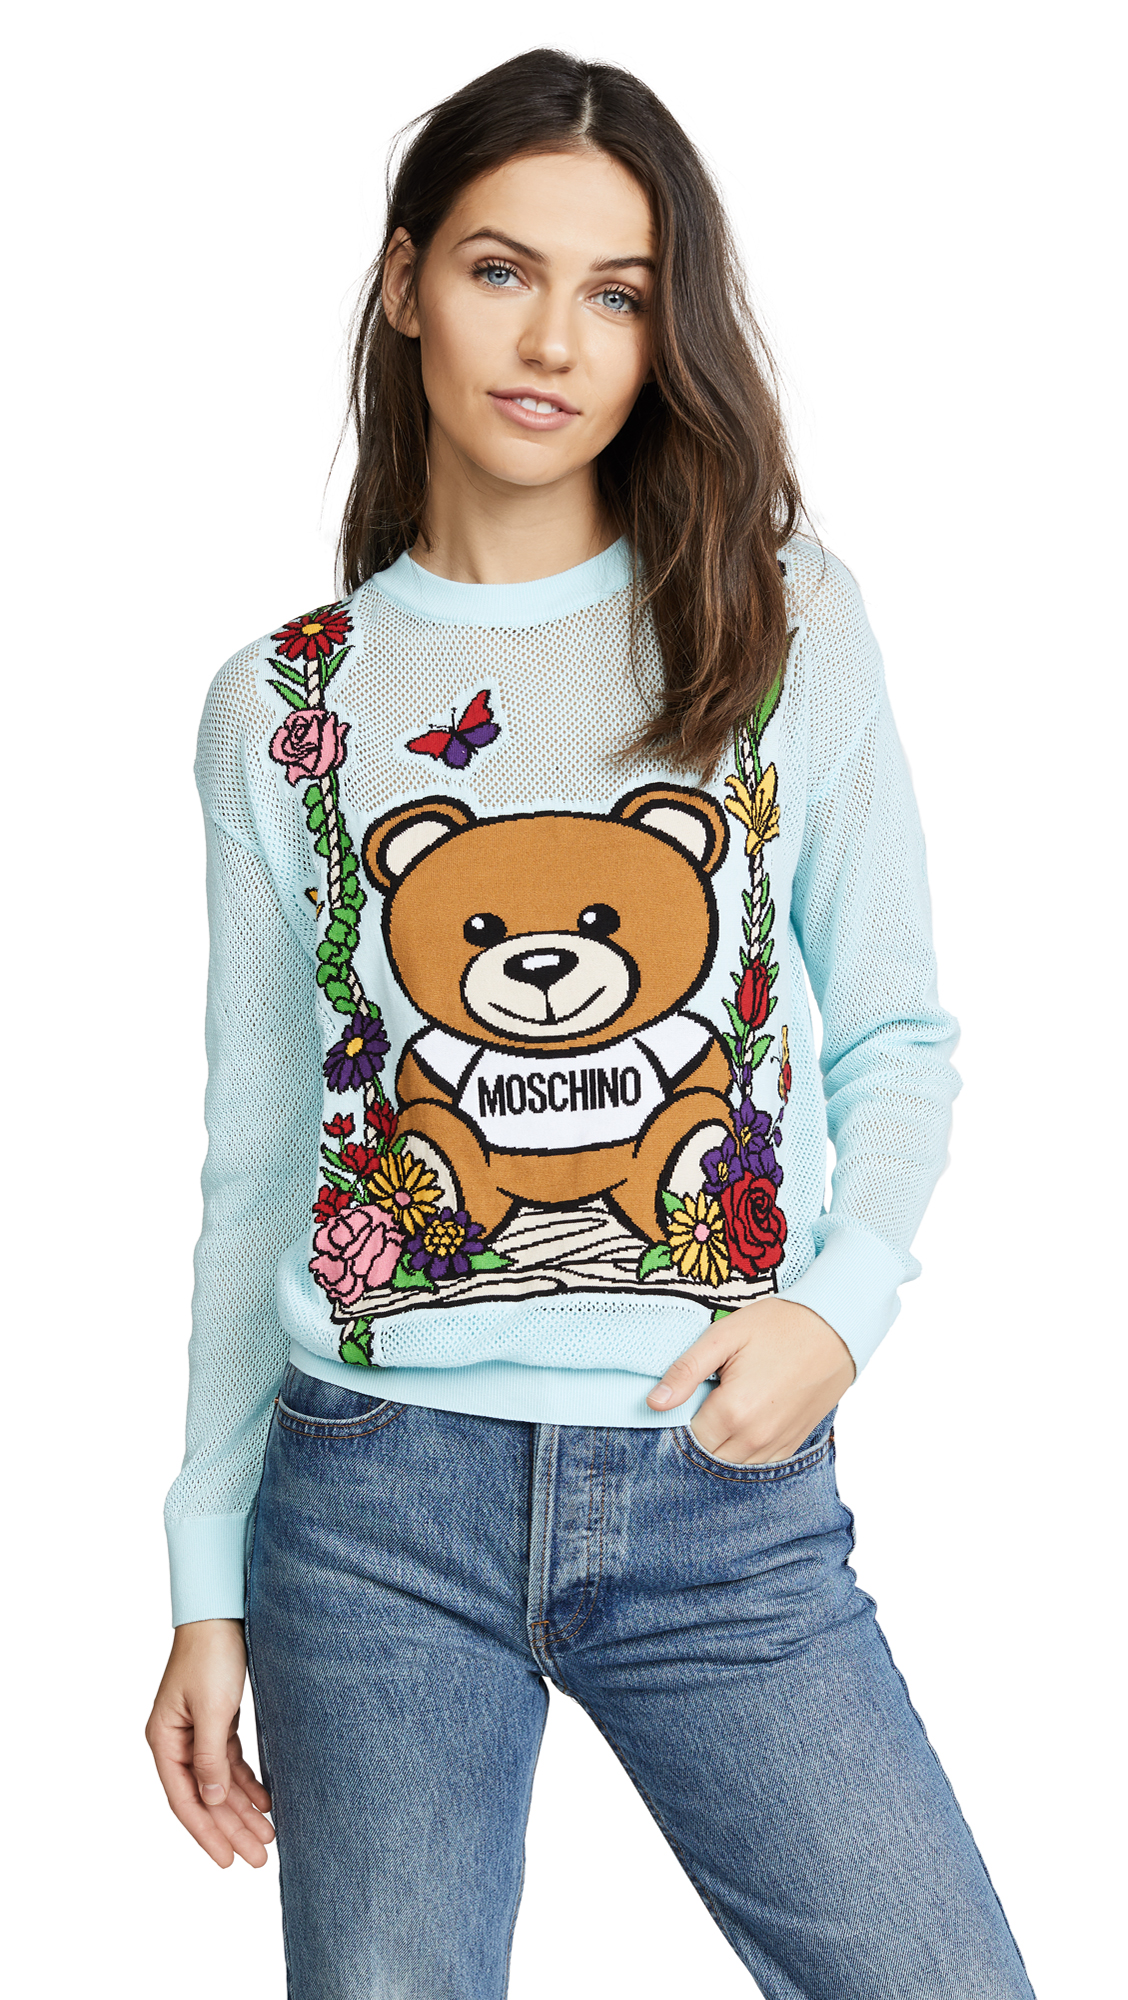 Moschino Moschino Bear Swing Sweater - Light Blue